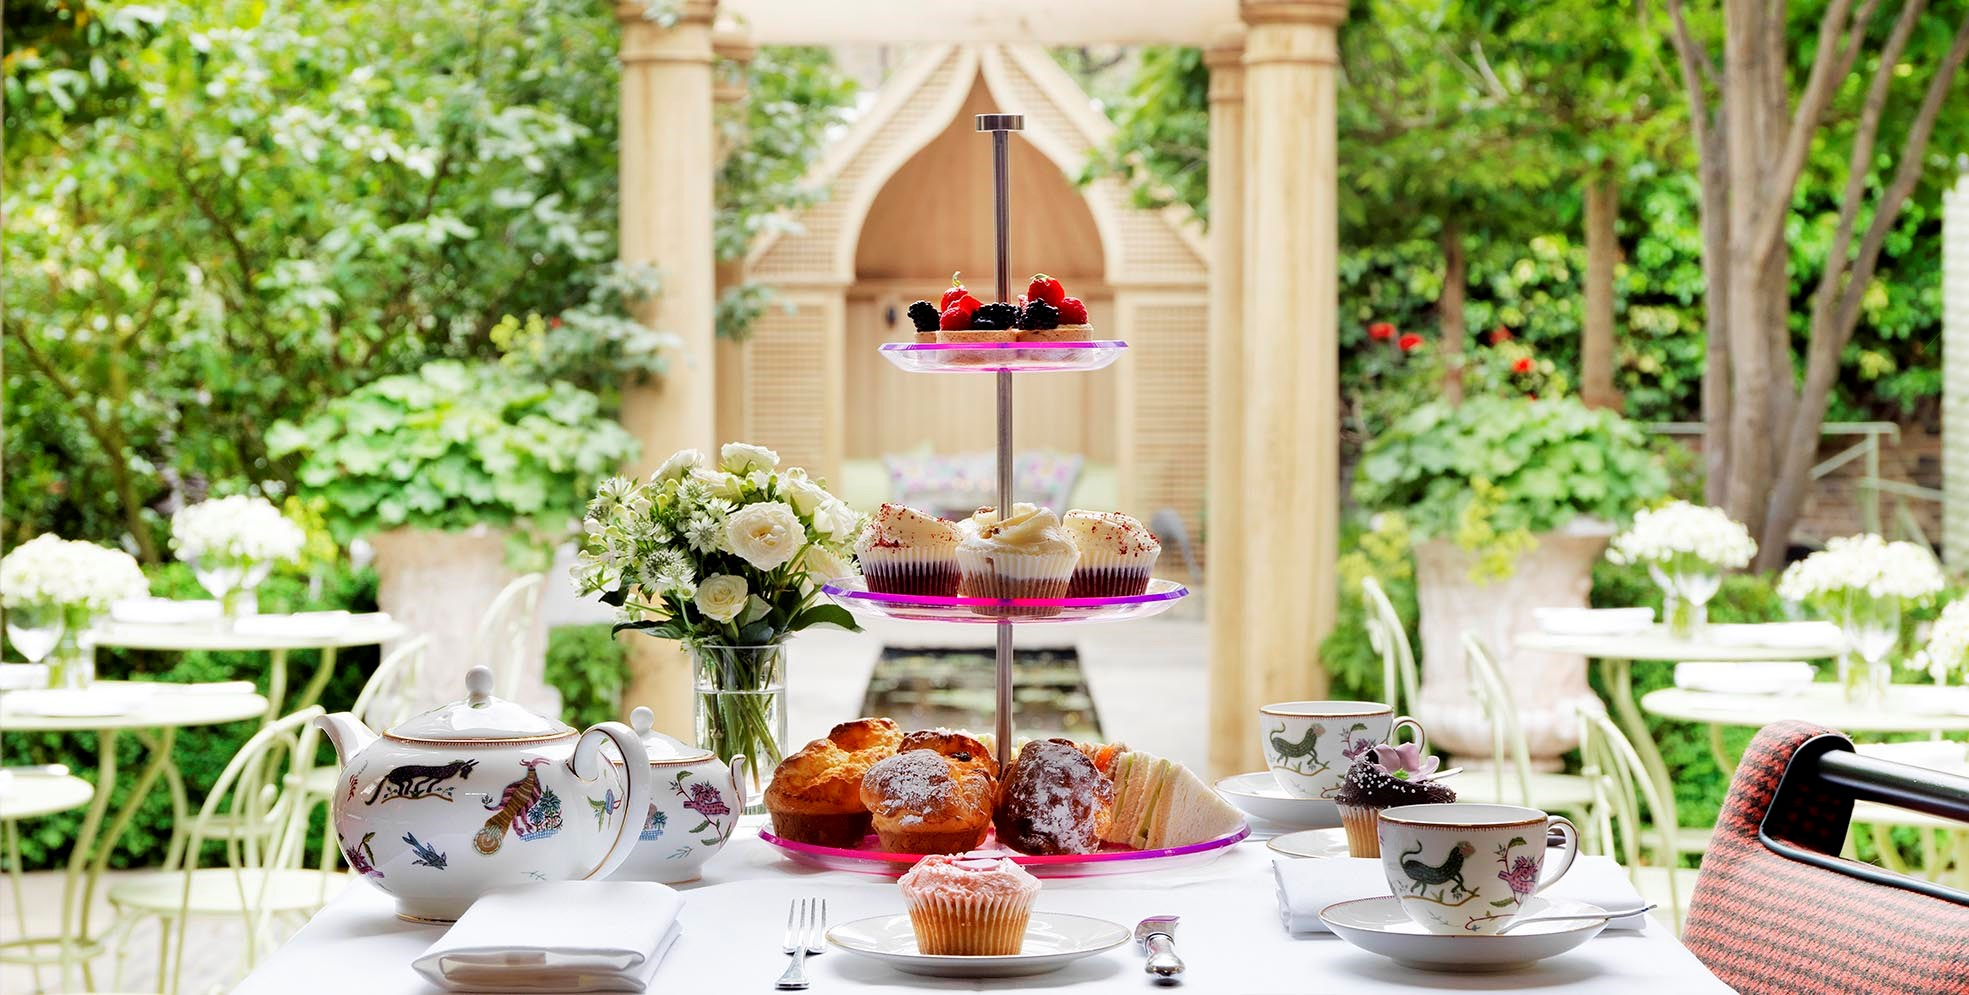 Best afternoon teas in London, 2017 guide